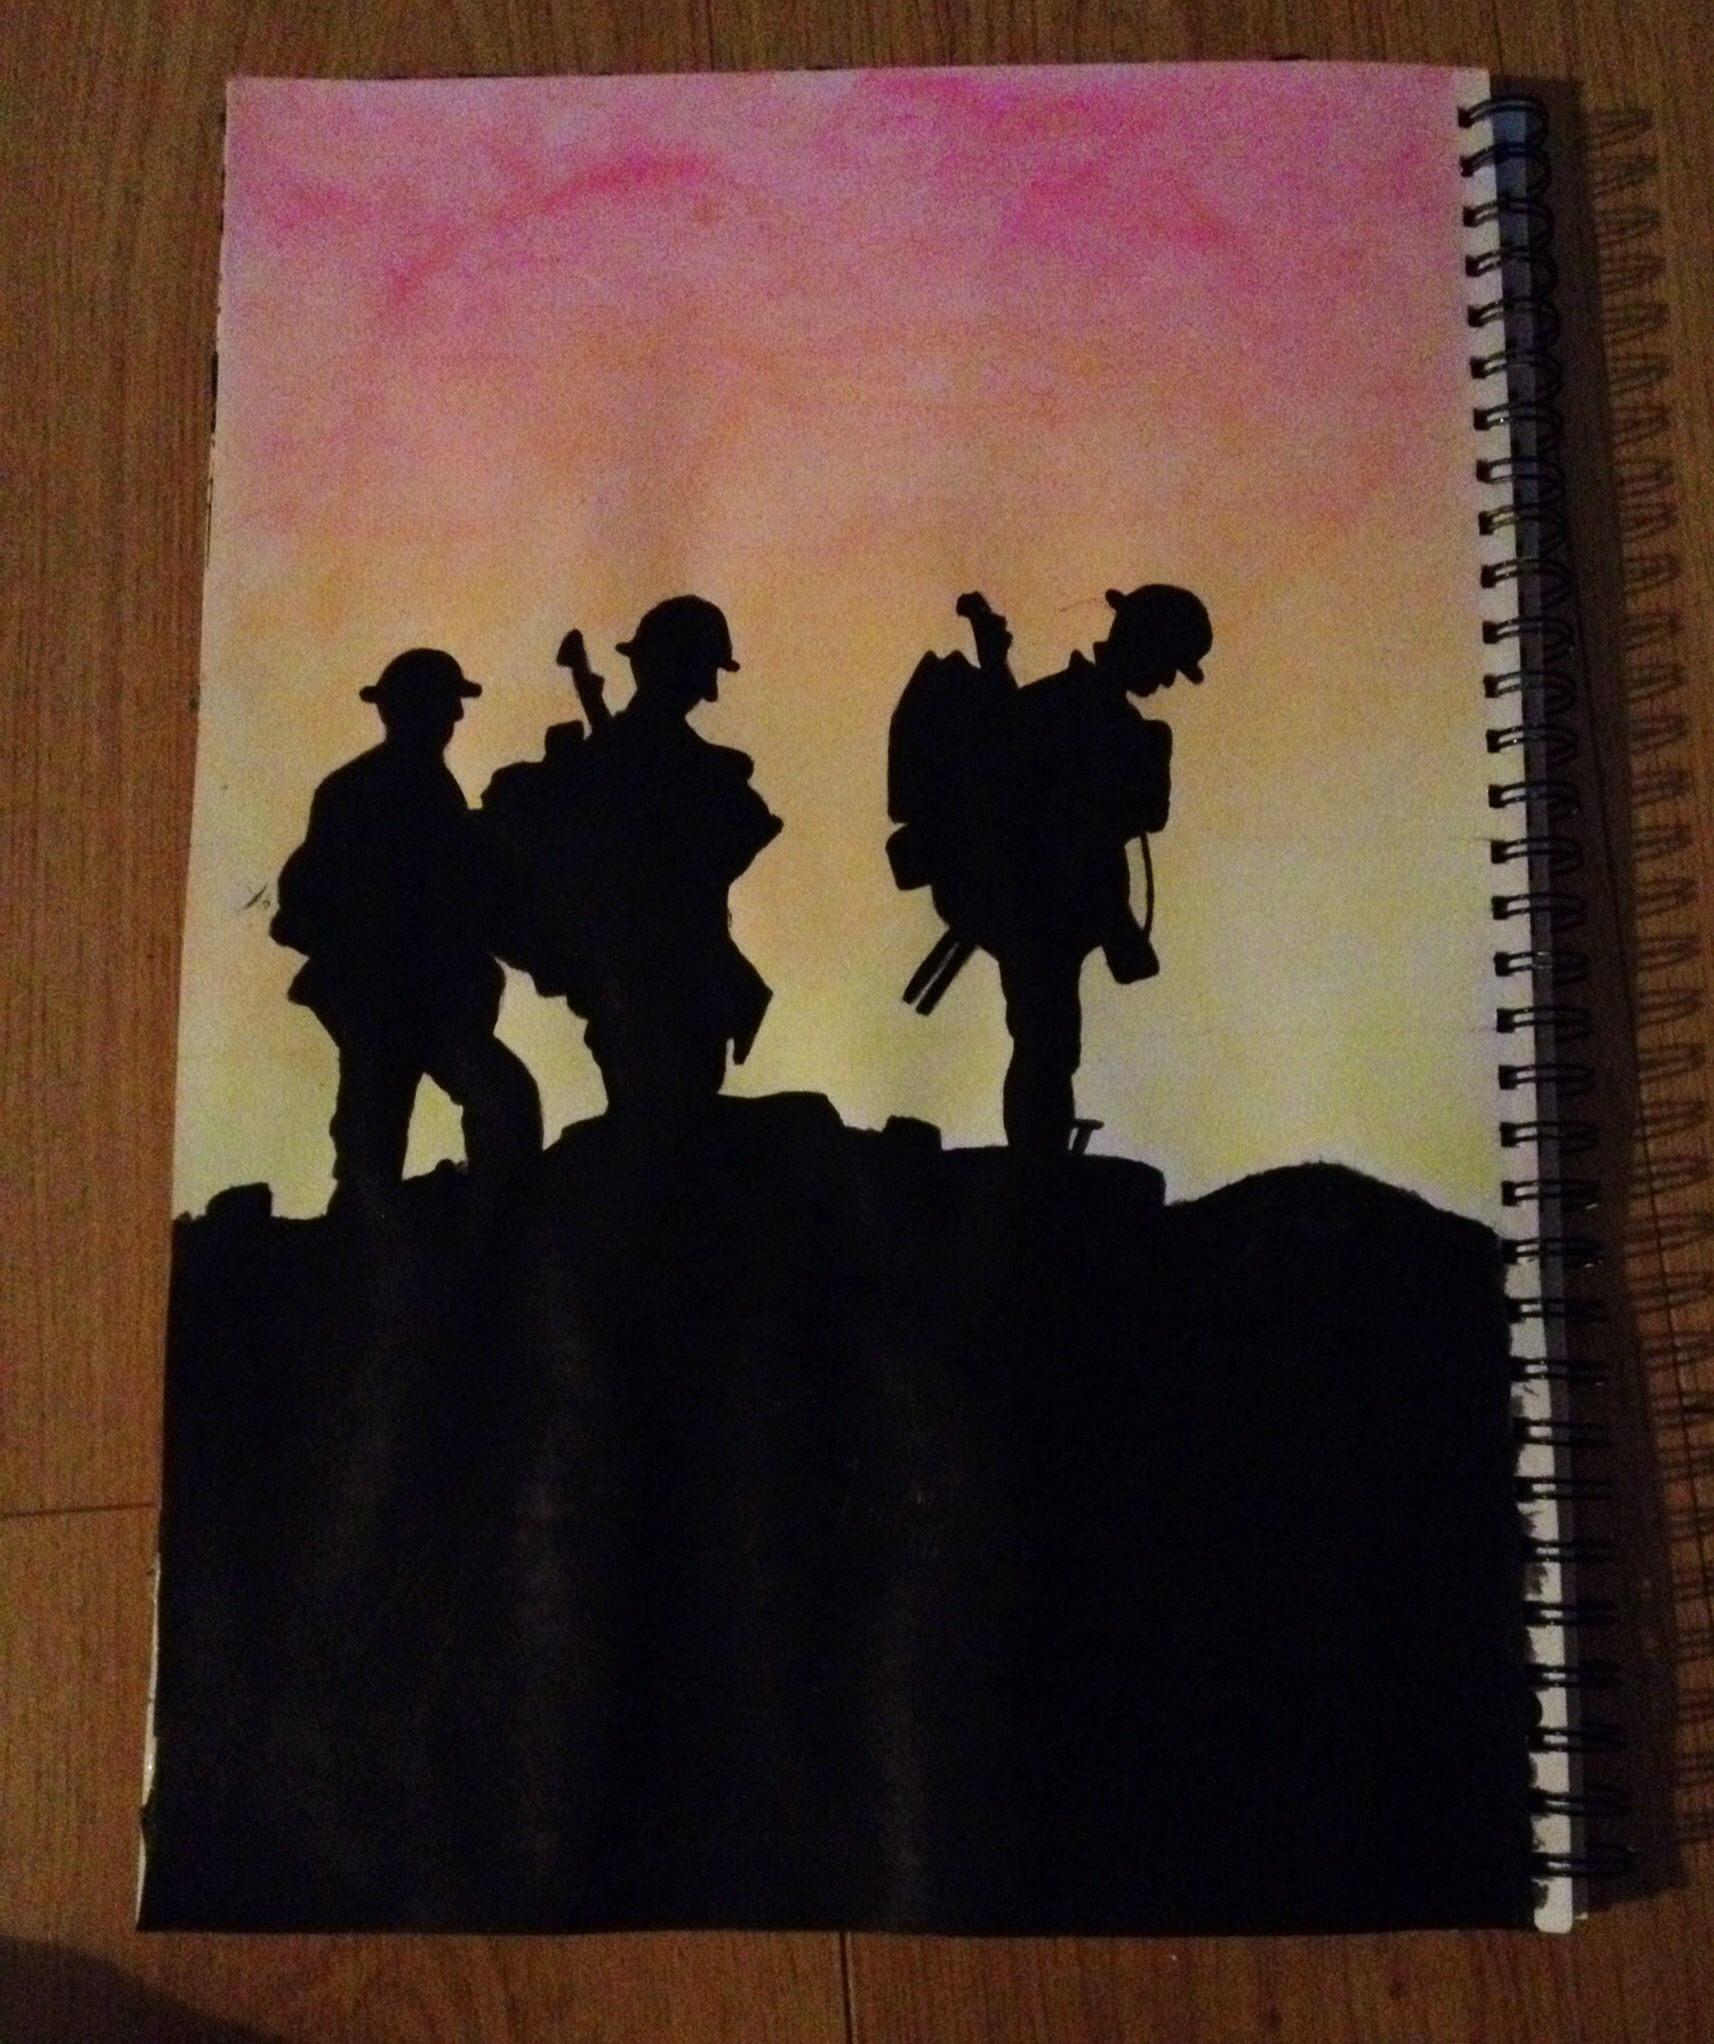 Silhouette Paintings Of People Image Result For Silhouette Of World War 1 Soldiers